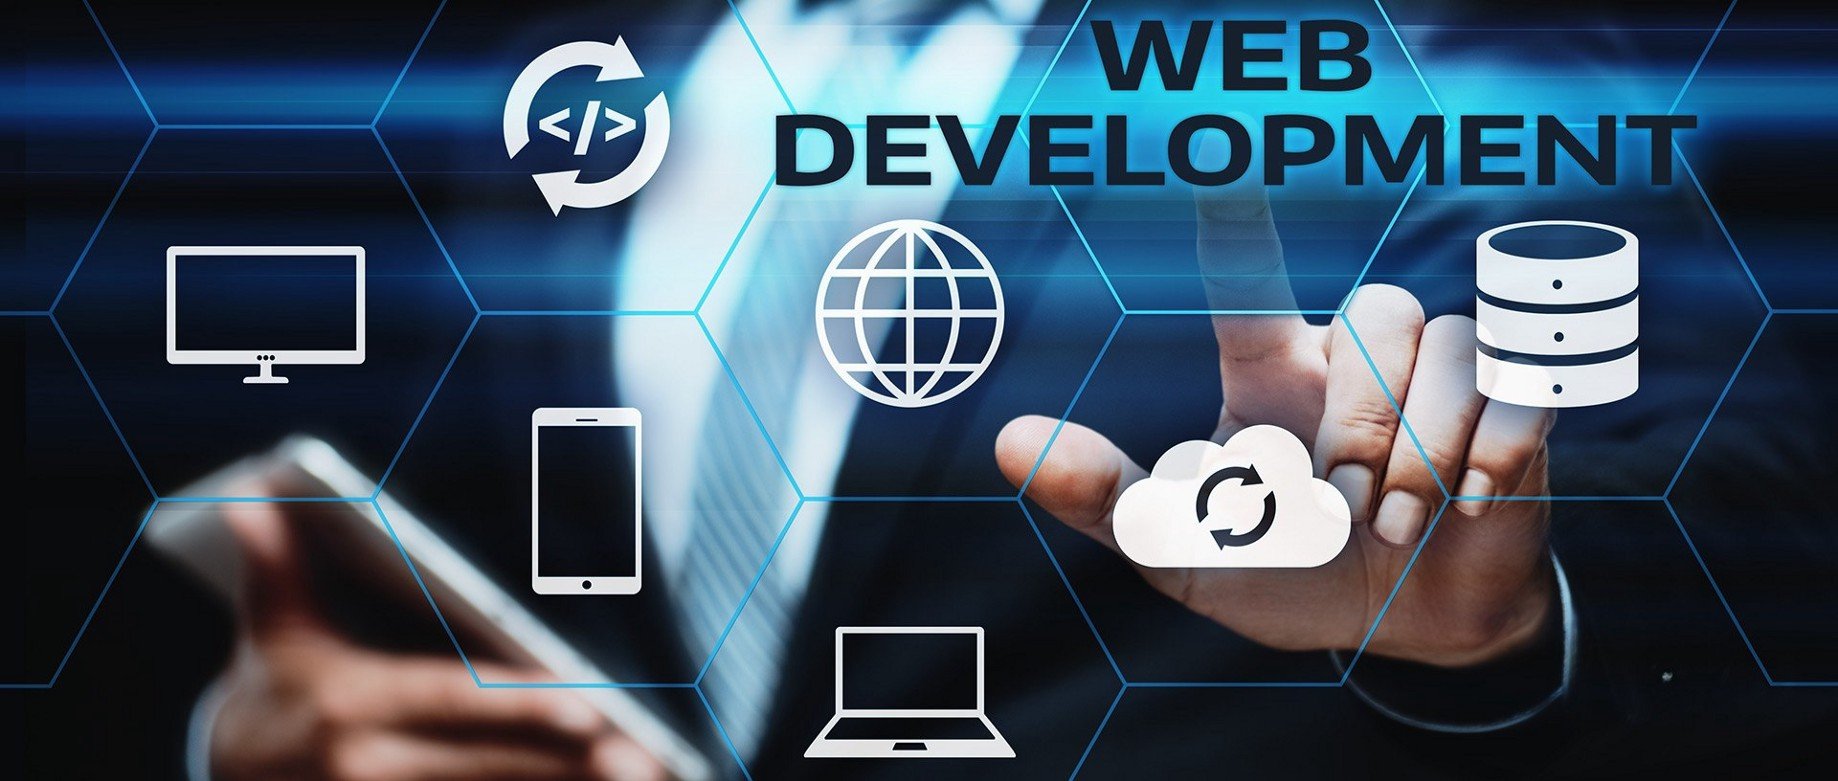 Best Custom Web Development Services Company in the USA